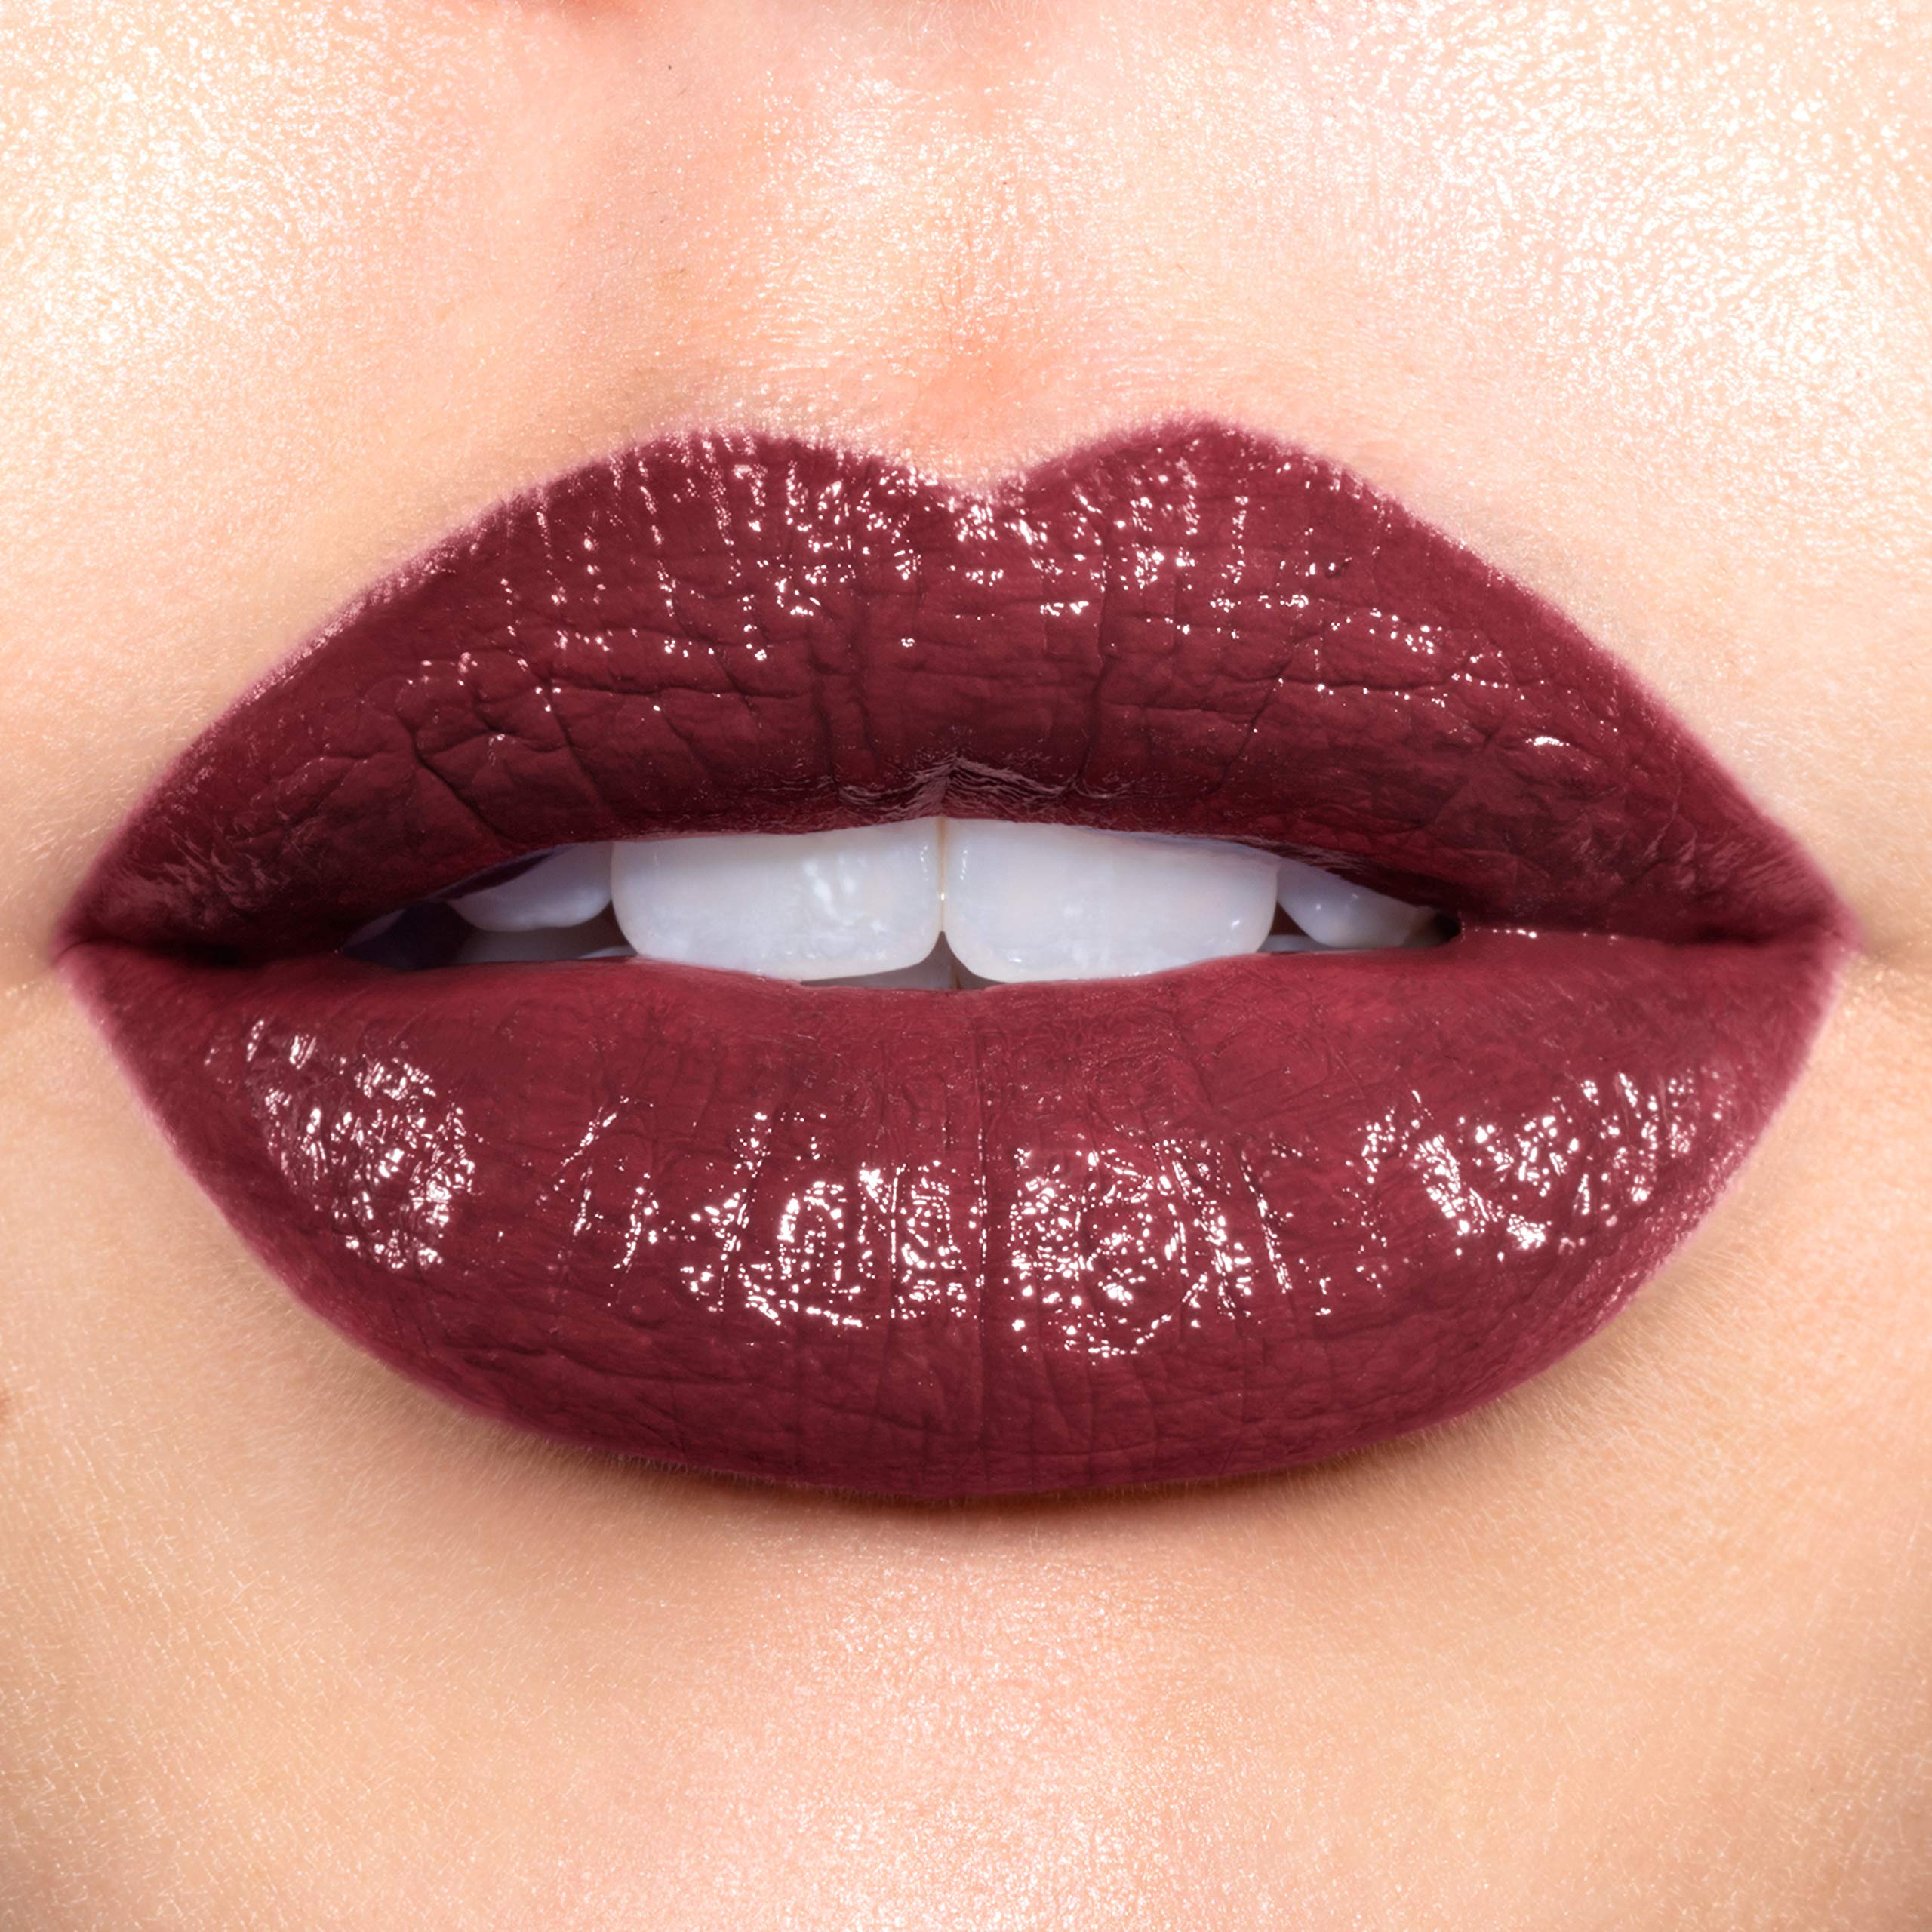 Revlon Super Lustrous Lipstick, High Impact Lipcolor with Moisturizing Creamy Formula, Infused with Vitamin E and Avocado Oil in Plum / Berry, Vampire Love (777)